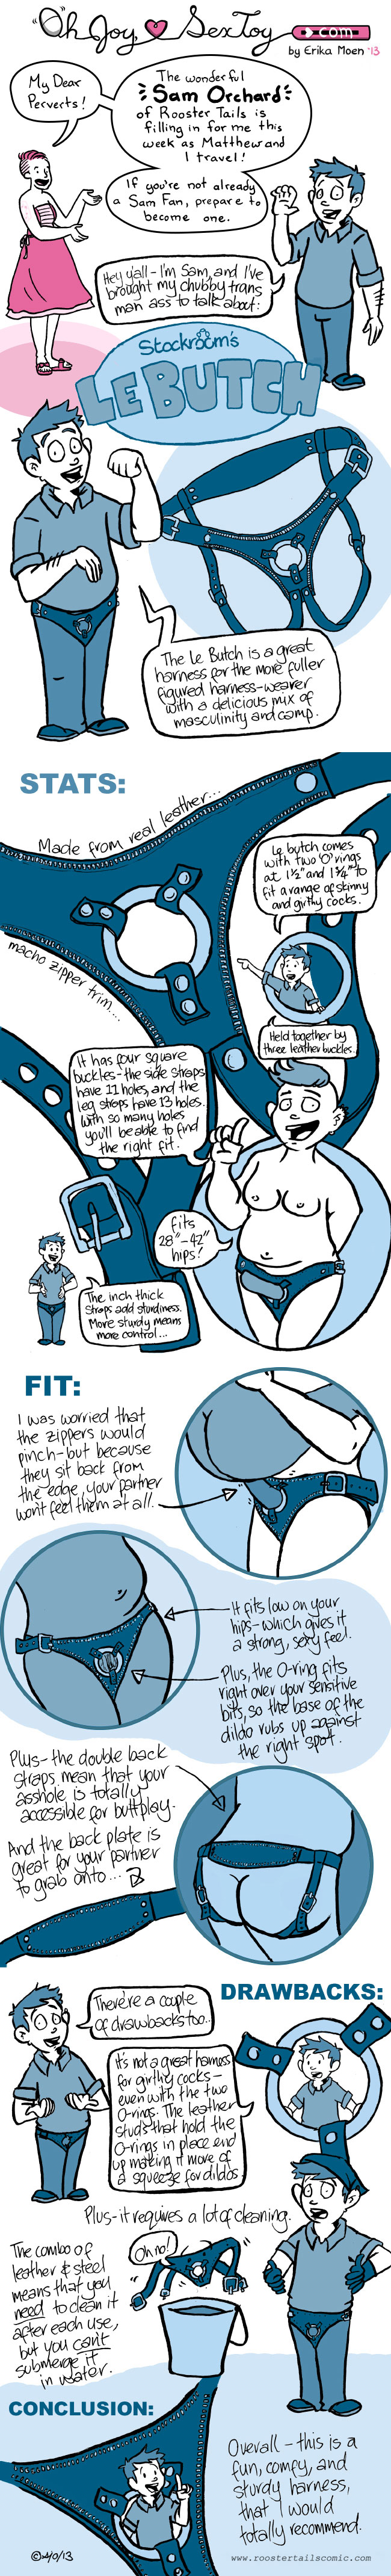 a comic raving about the le butch